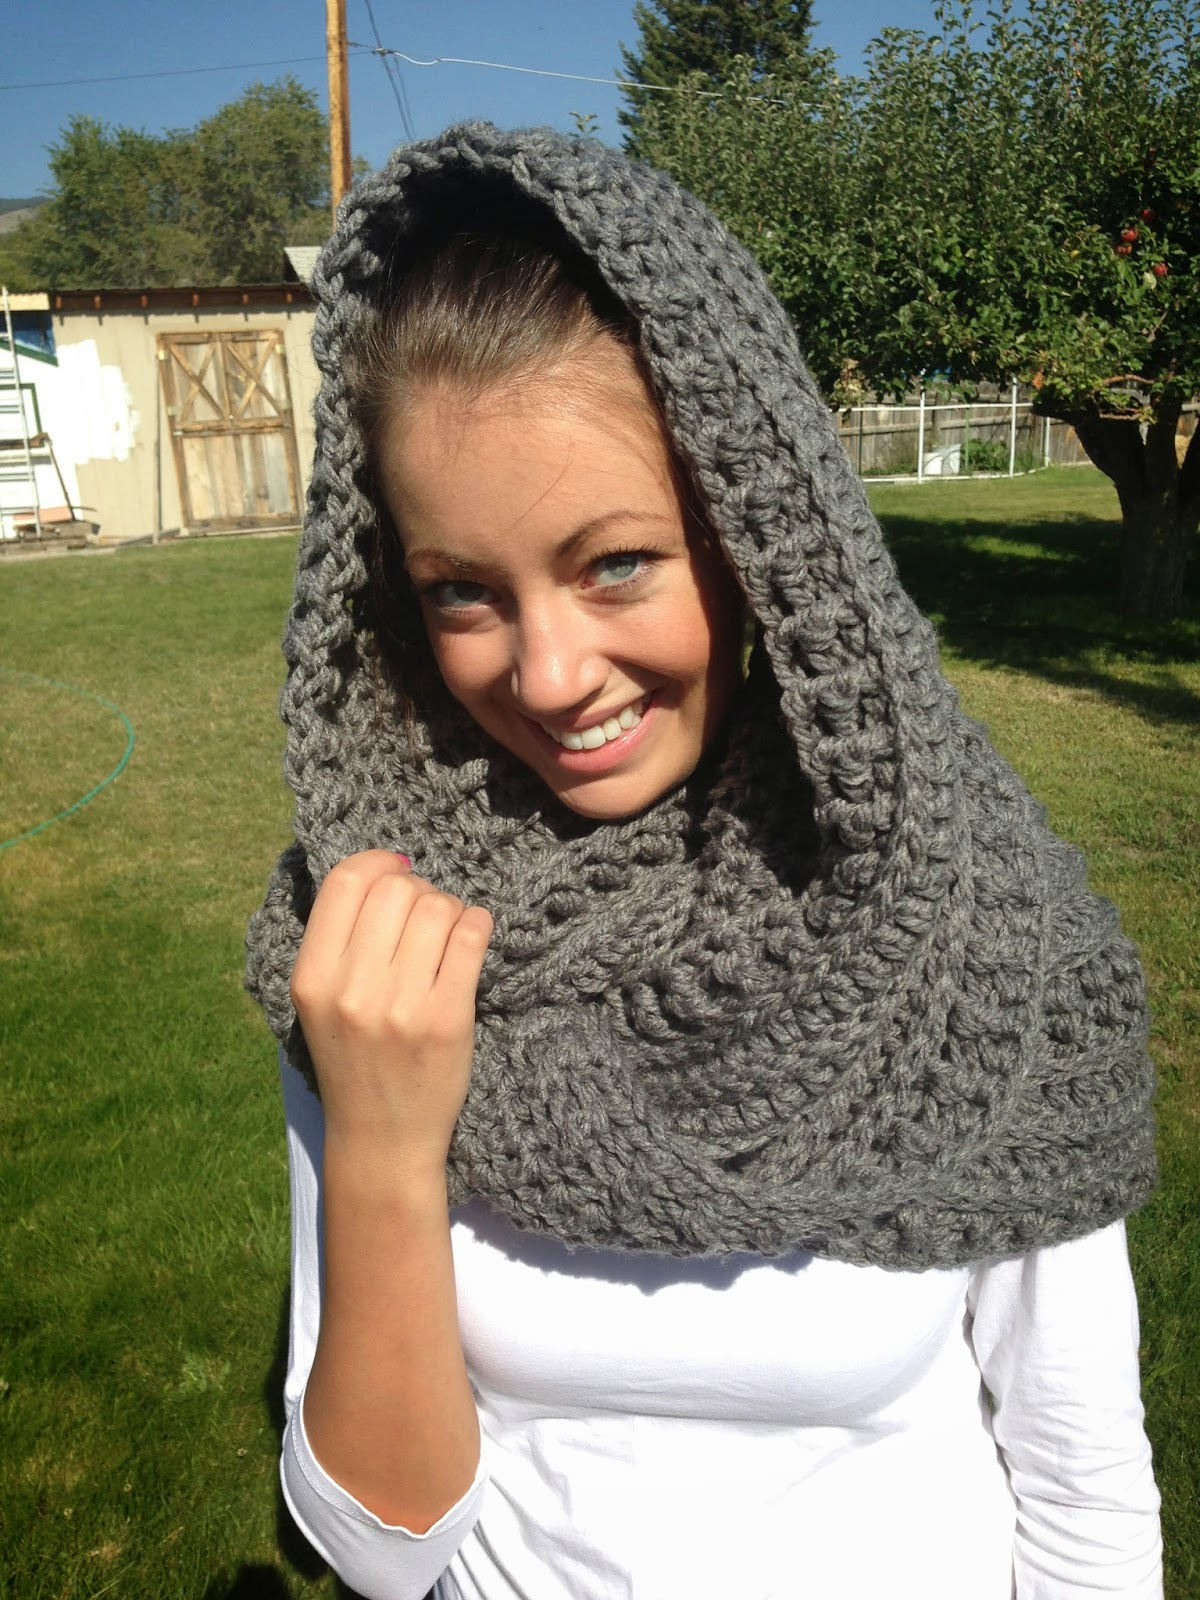 Free Knitting Pattern For Katniss Cowl : Free Crochet Katniss Cowl Pattern - The Friendly Red Fox